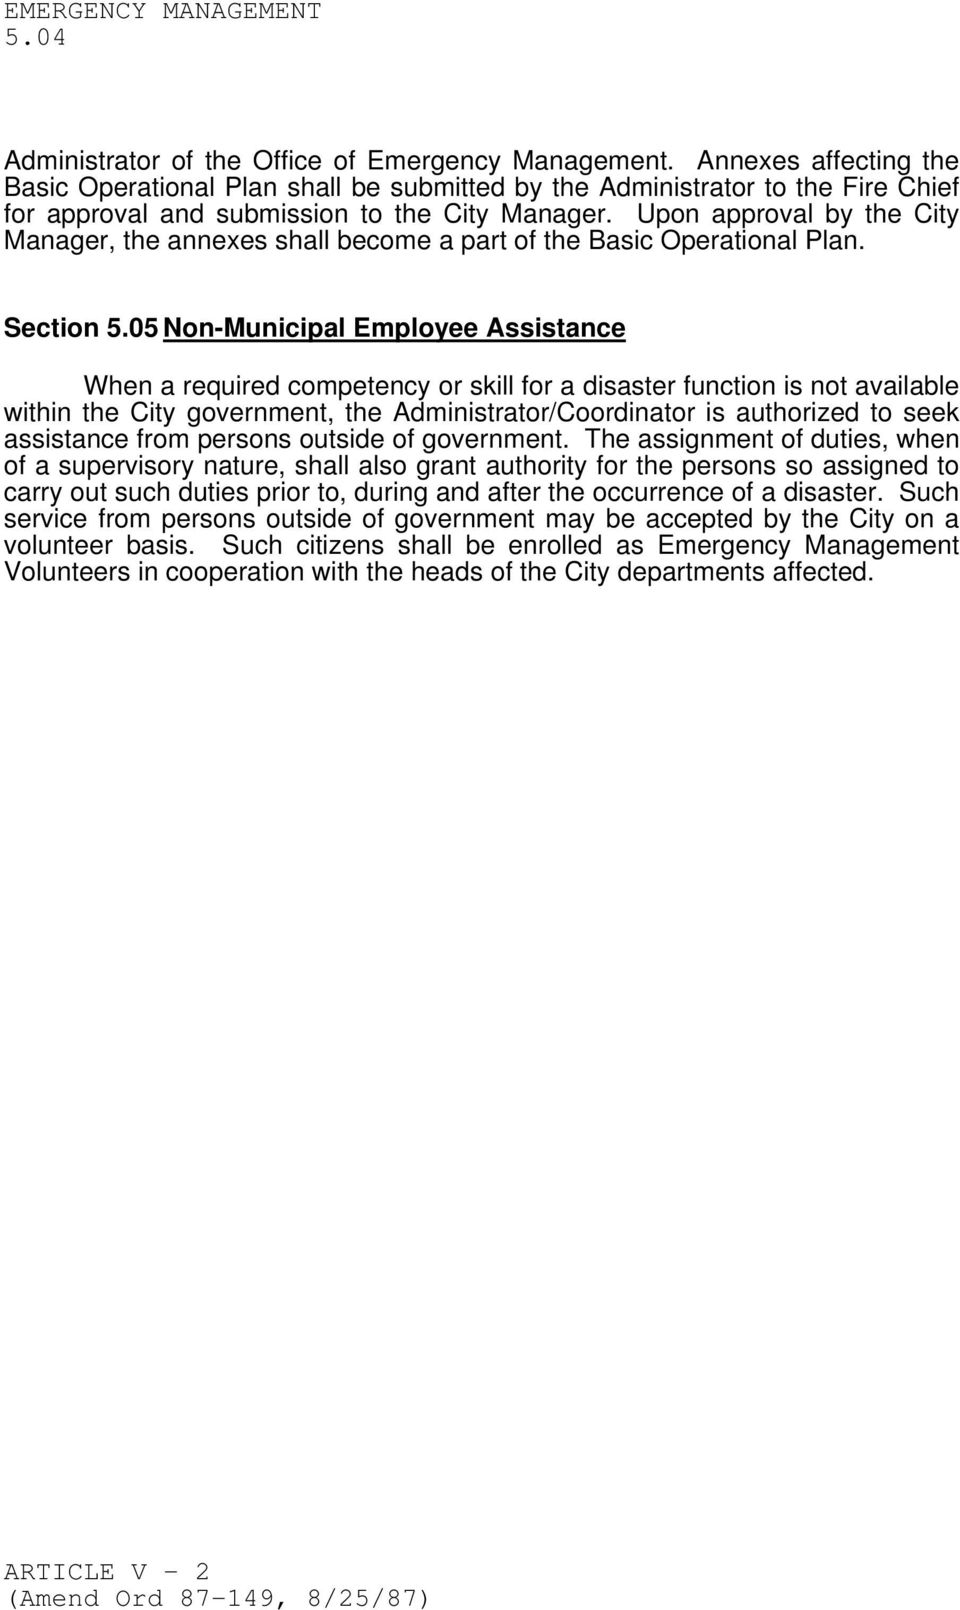 Upon approval by the City Manager, the annexes shall become a part of the Basic Operational Plan. Section 5.